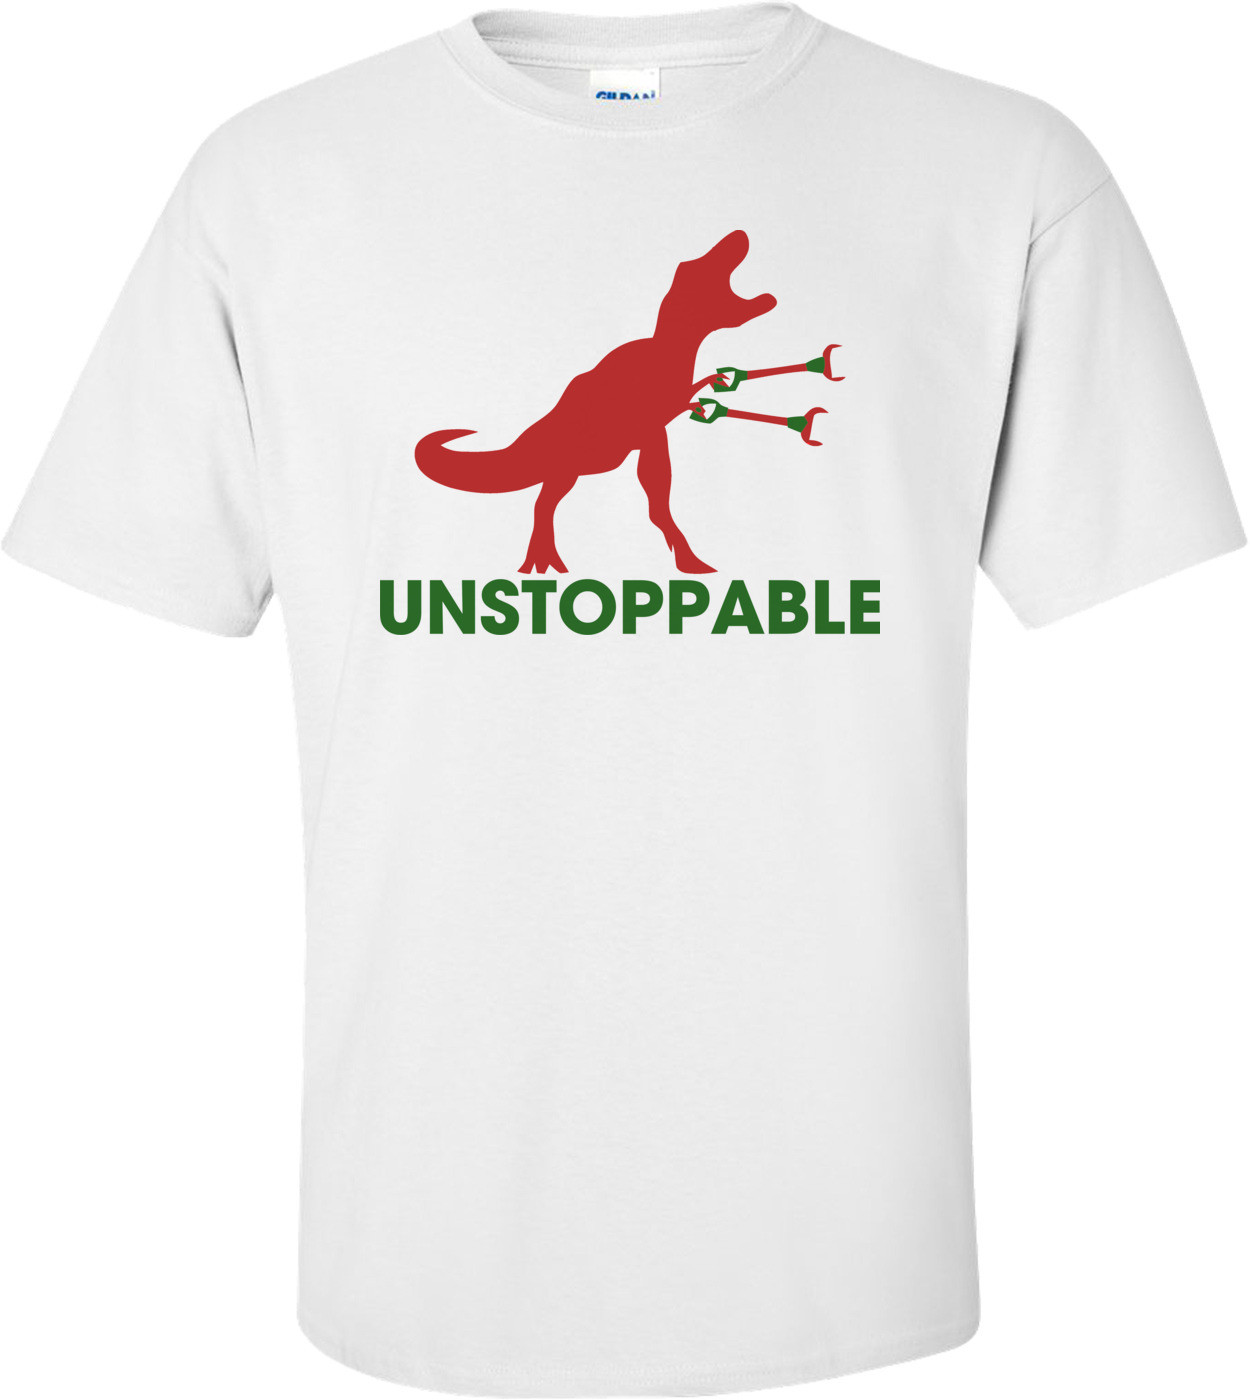 Unstoppable T-rex Shirt